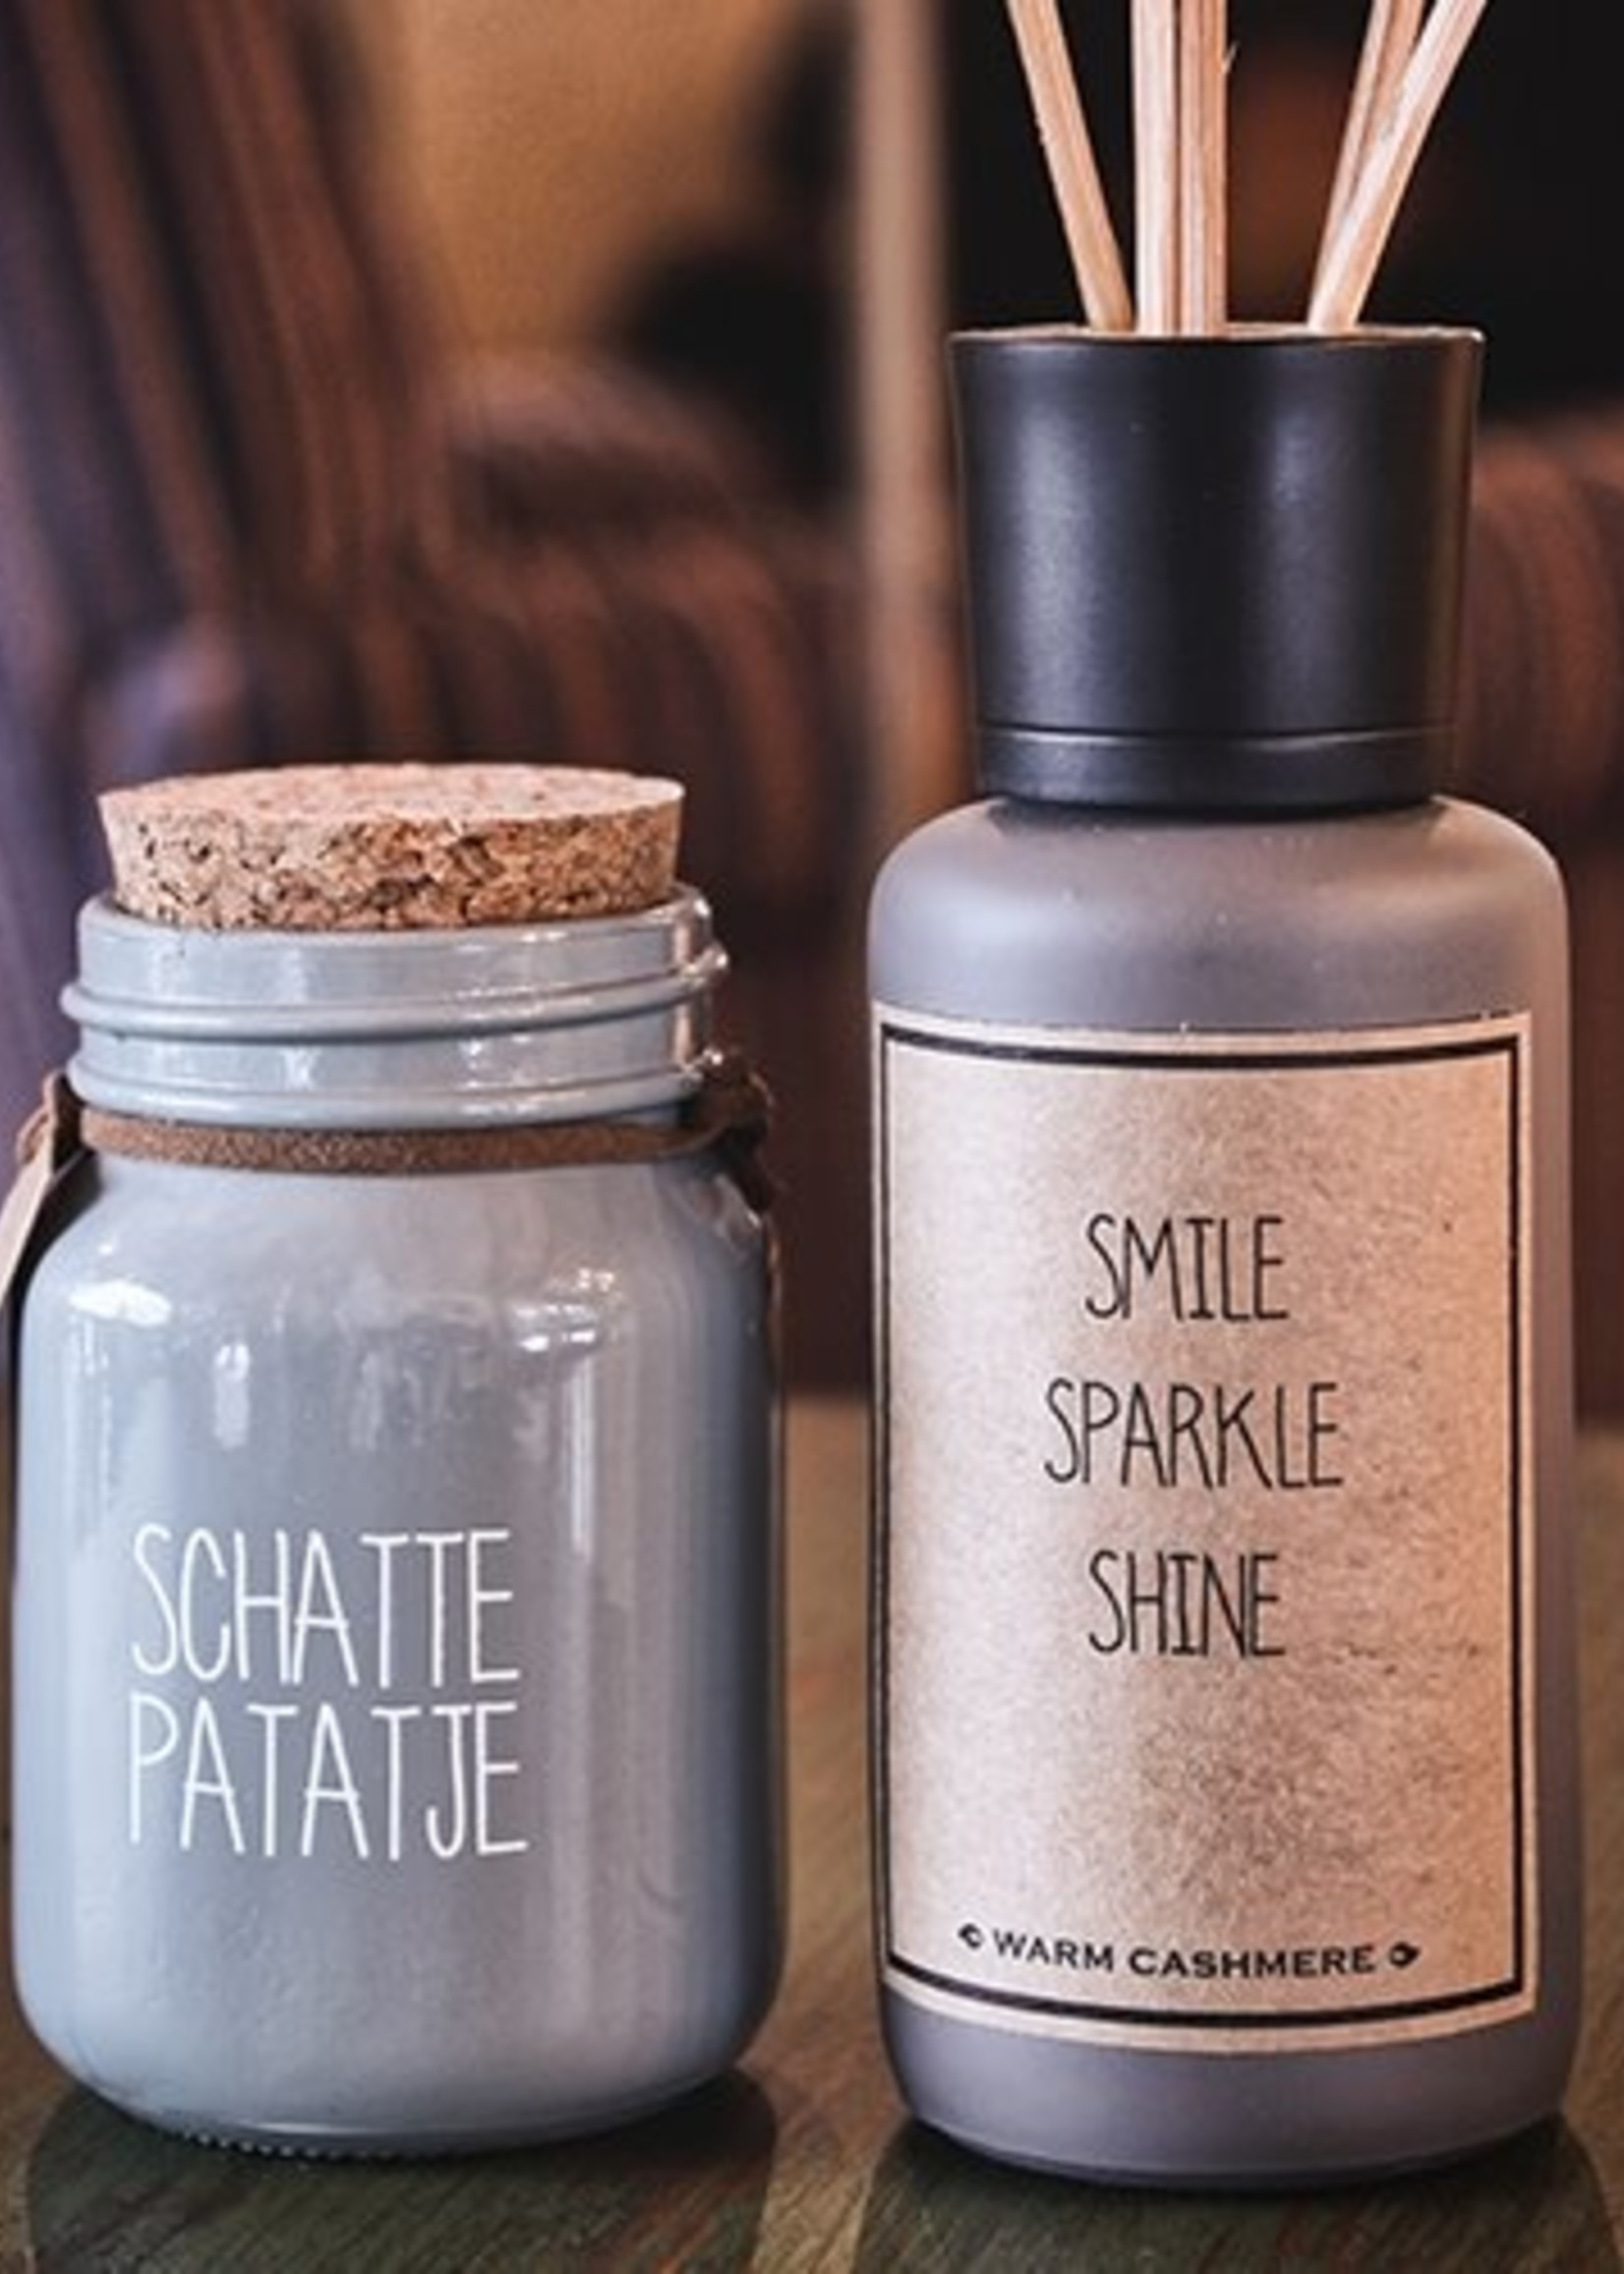 My Flame Lifestyle My Flame Schatje Patatje Kaars